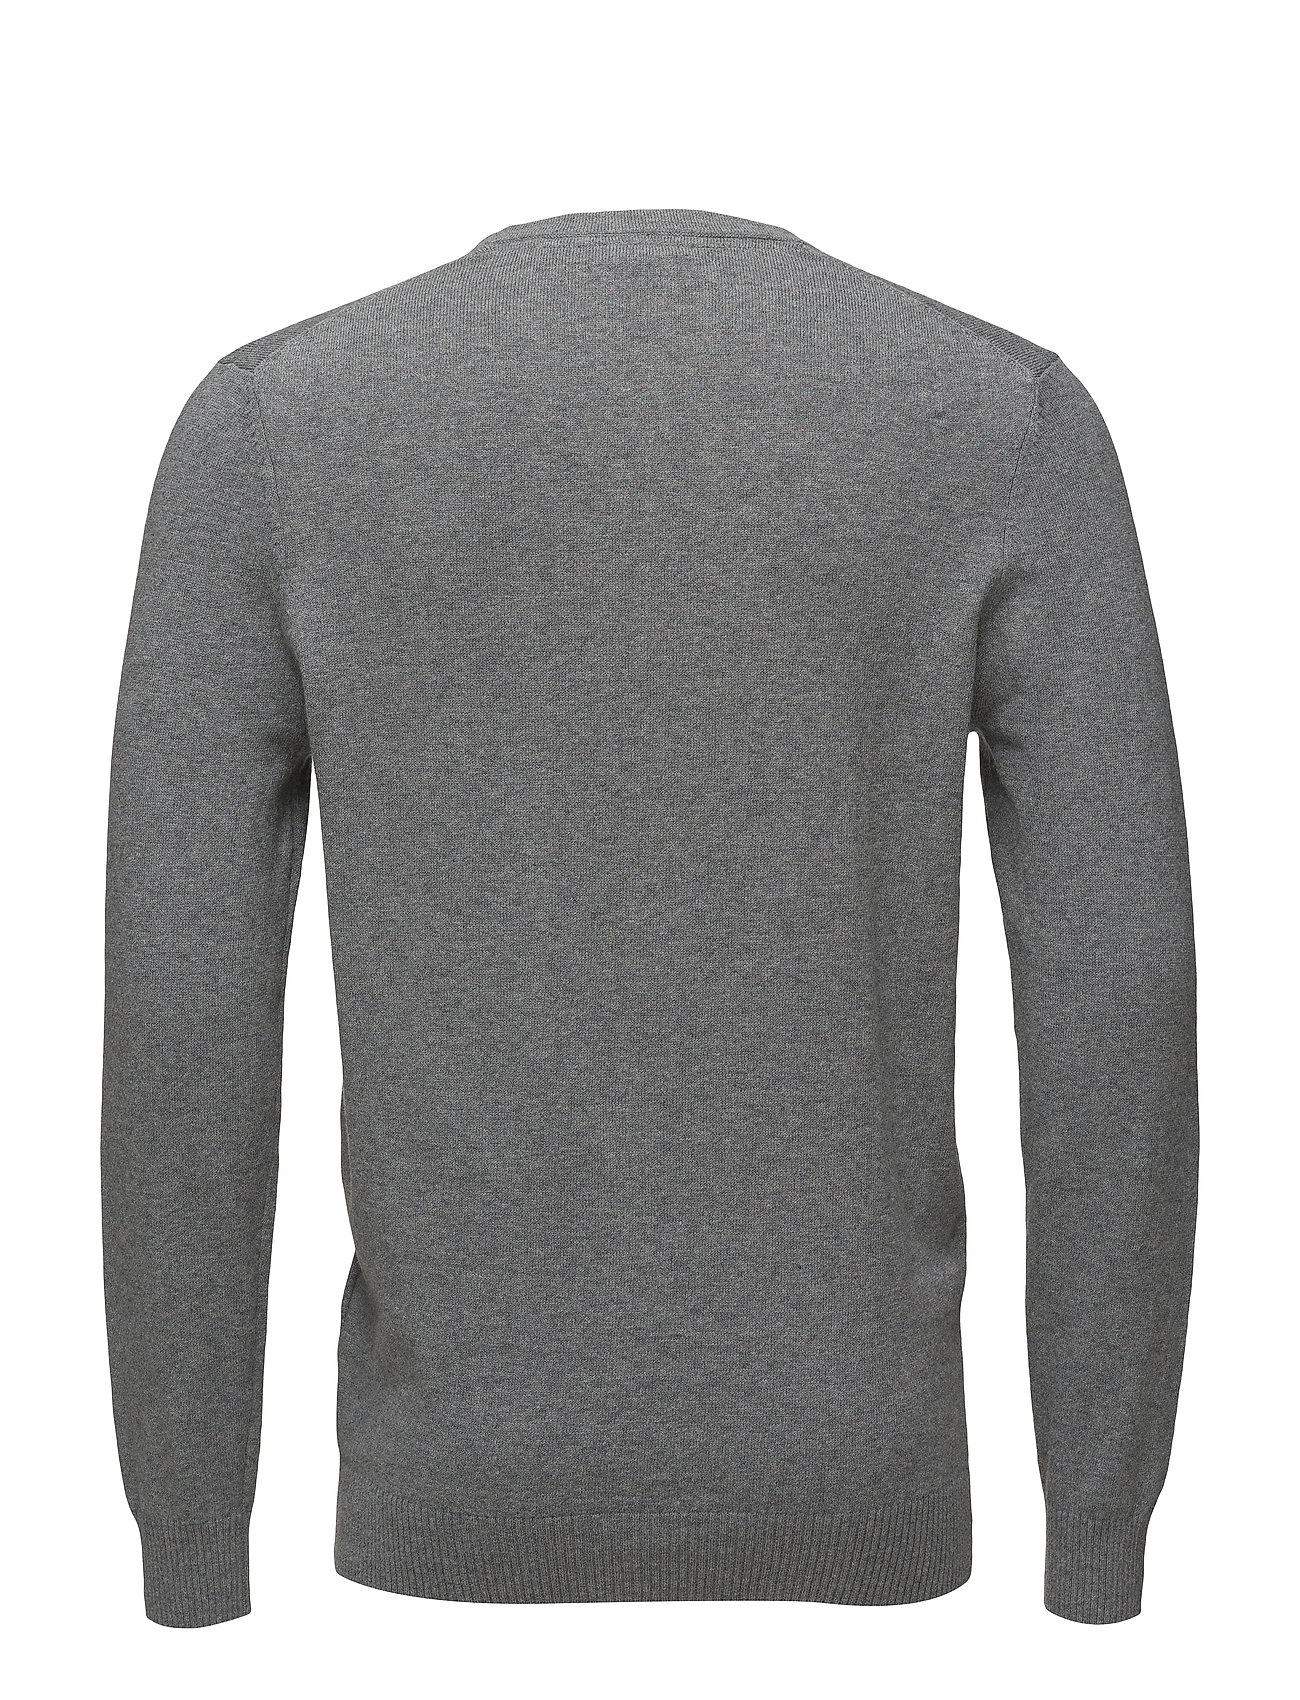 V Cotton Grey Scott Neck Merino MarlLyleamp; Jumpermid sdrxthCQ